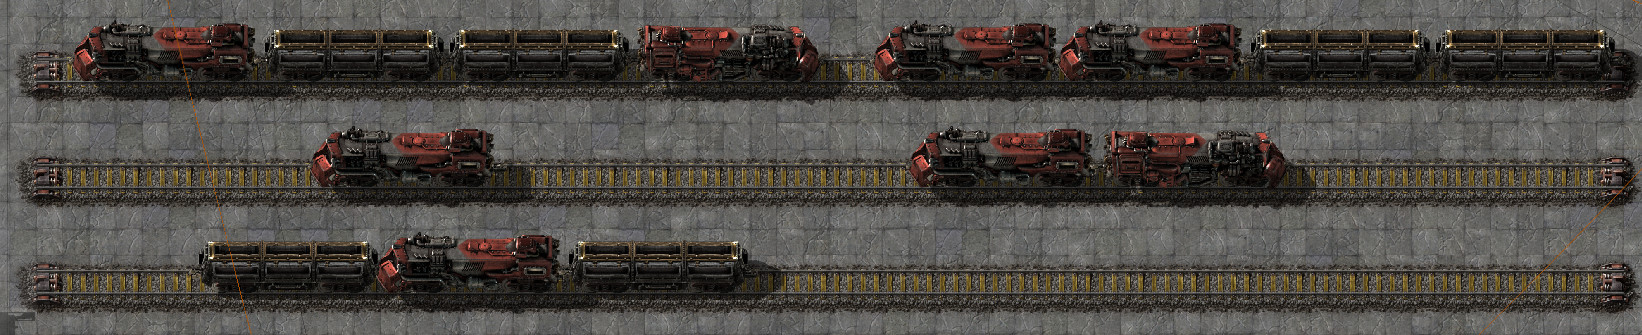 factorio-train-example.jpg